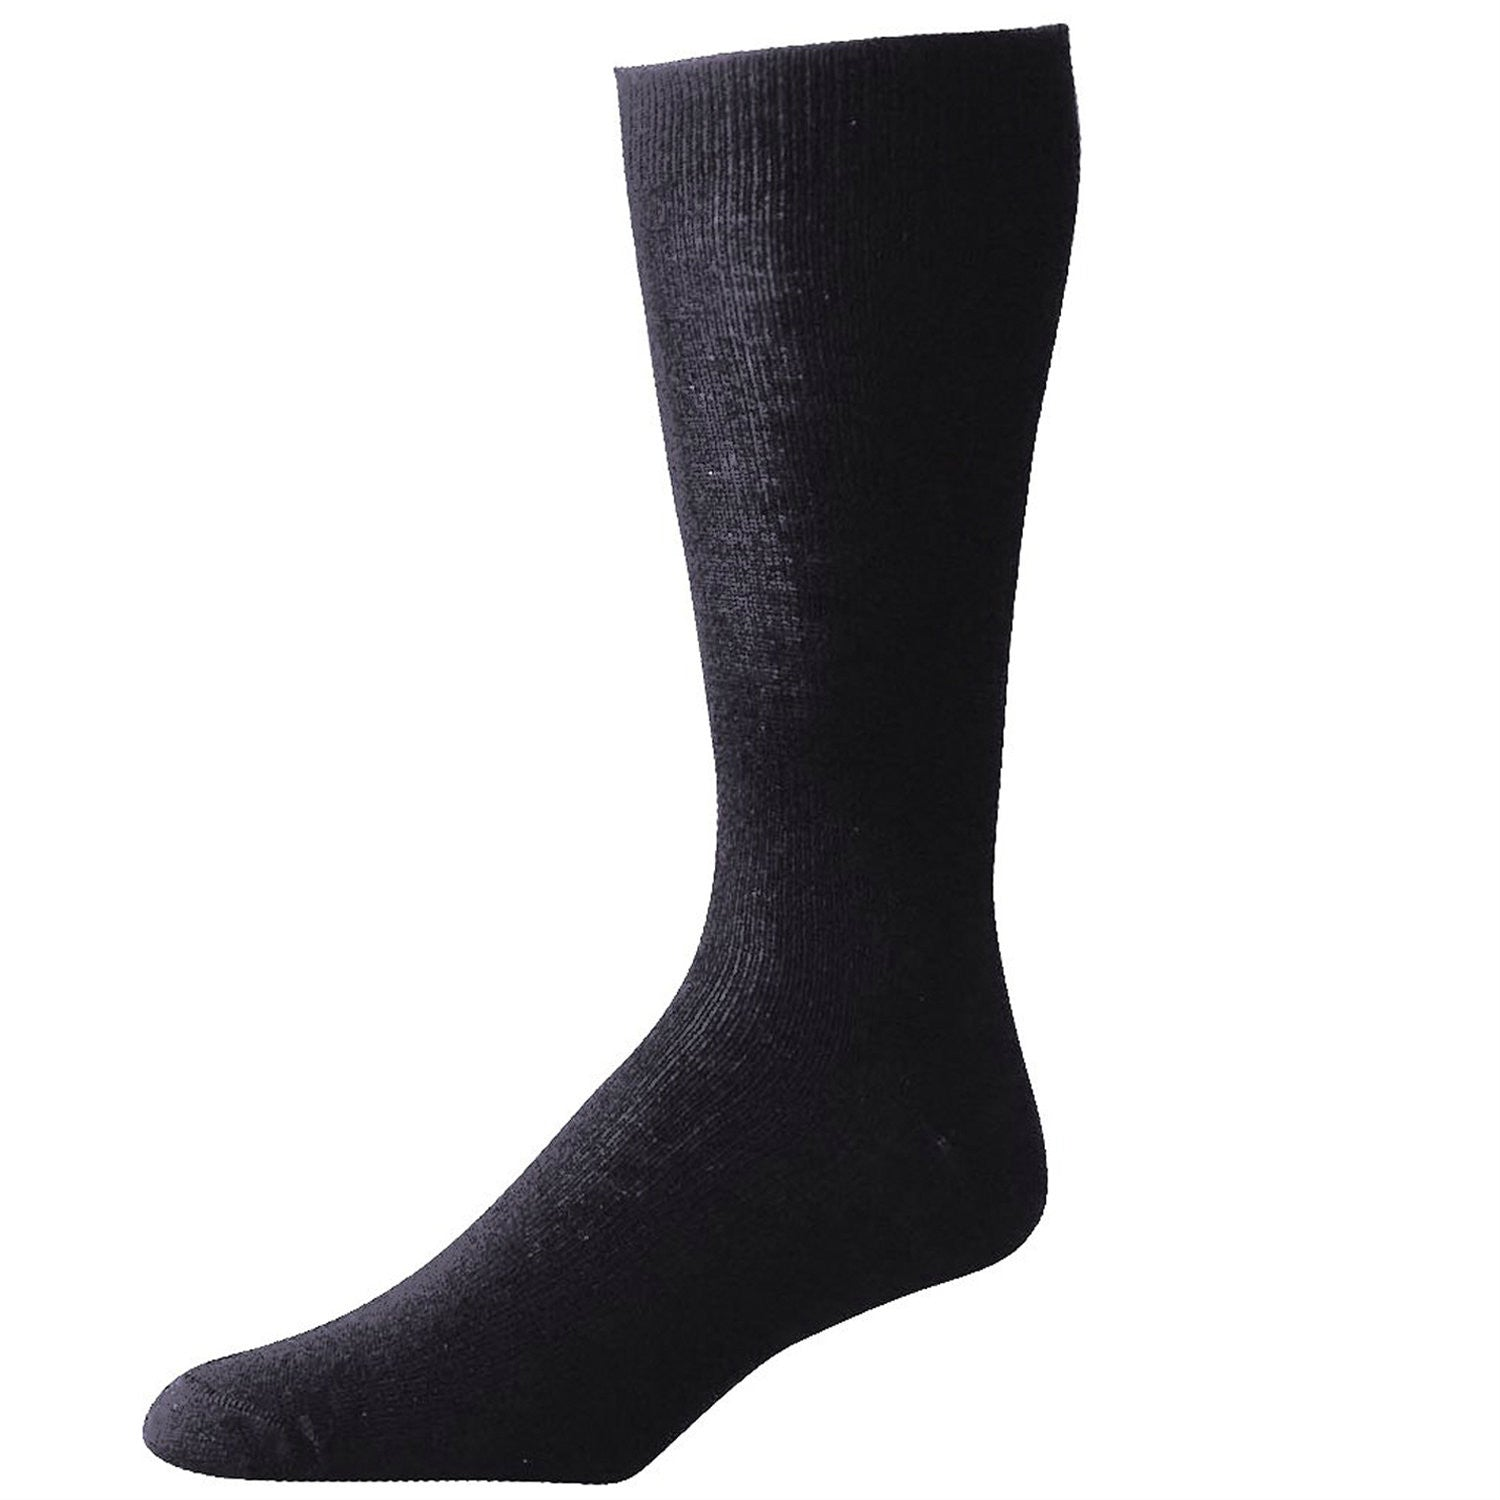 GI Polypropylene Sock Liner Black